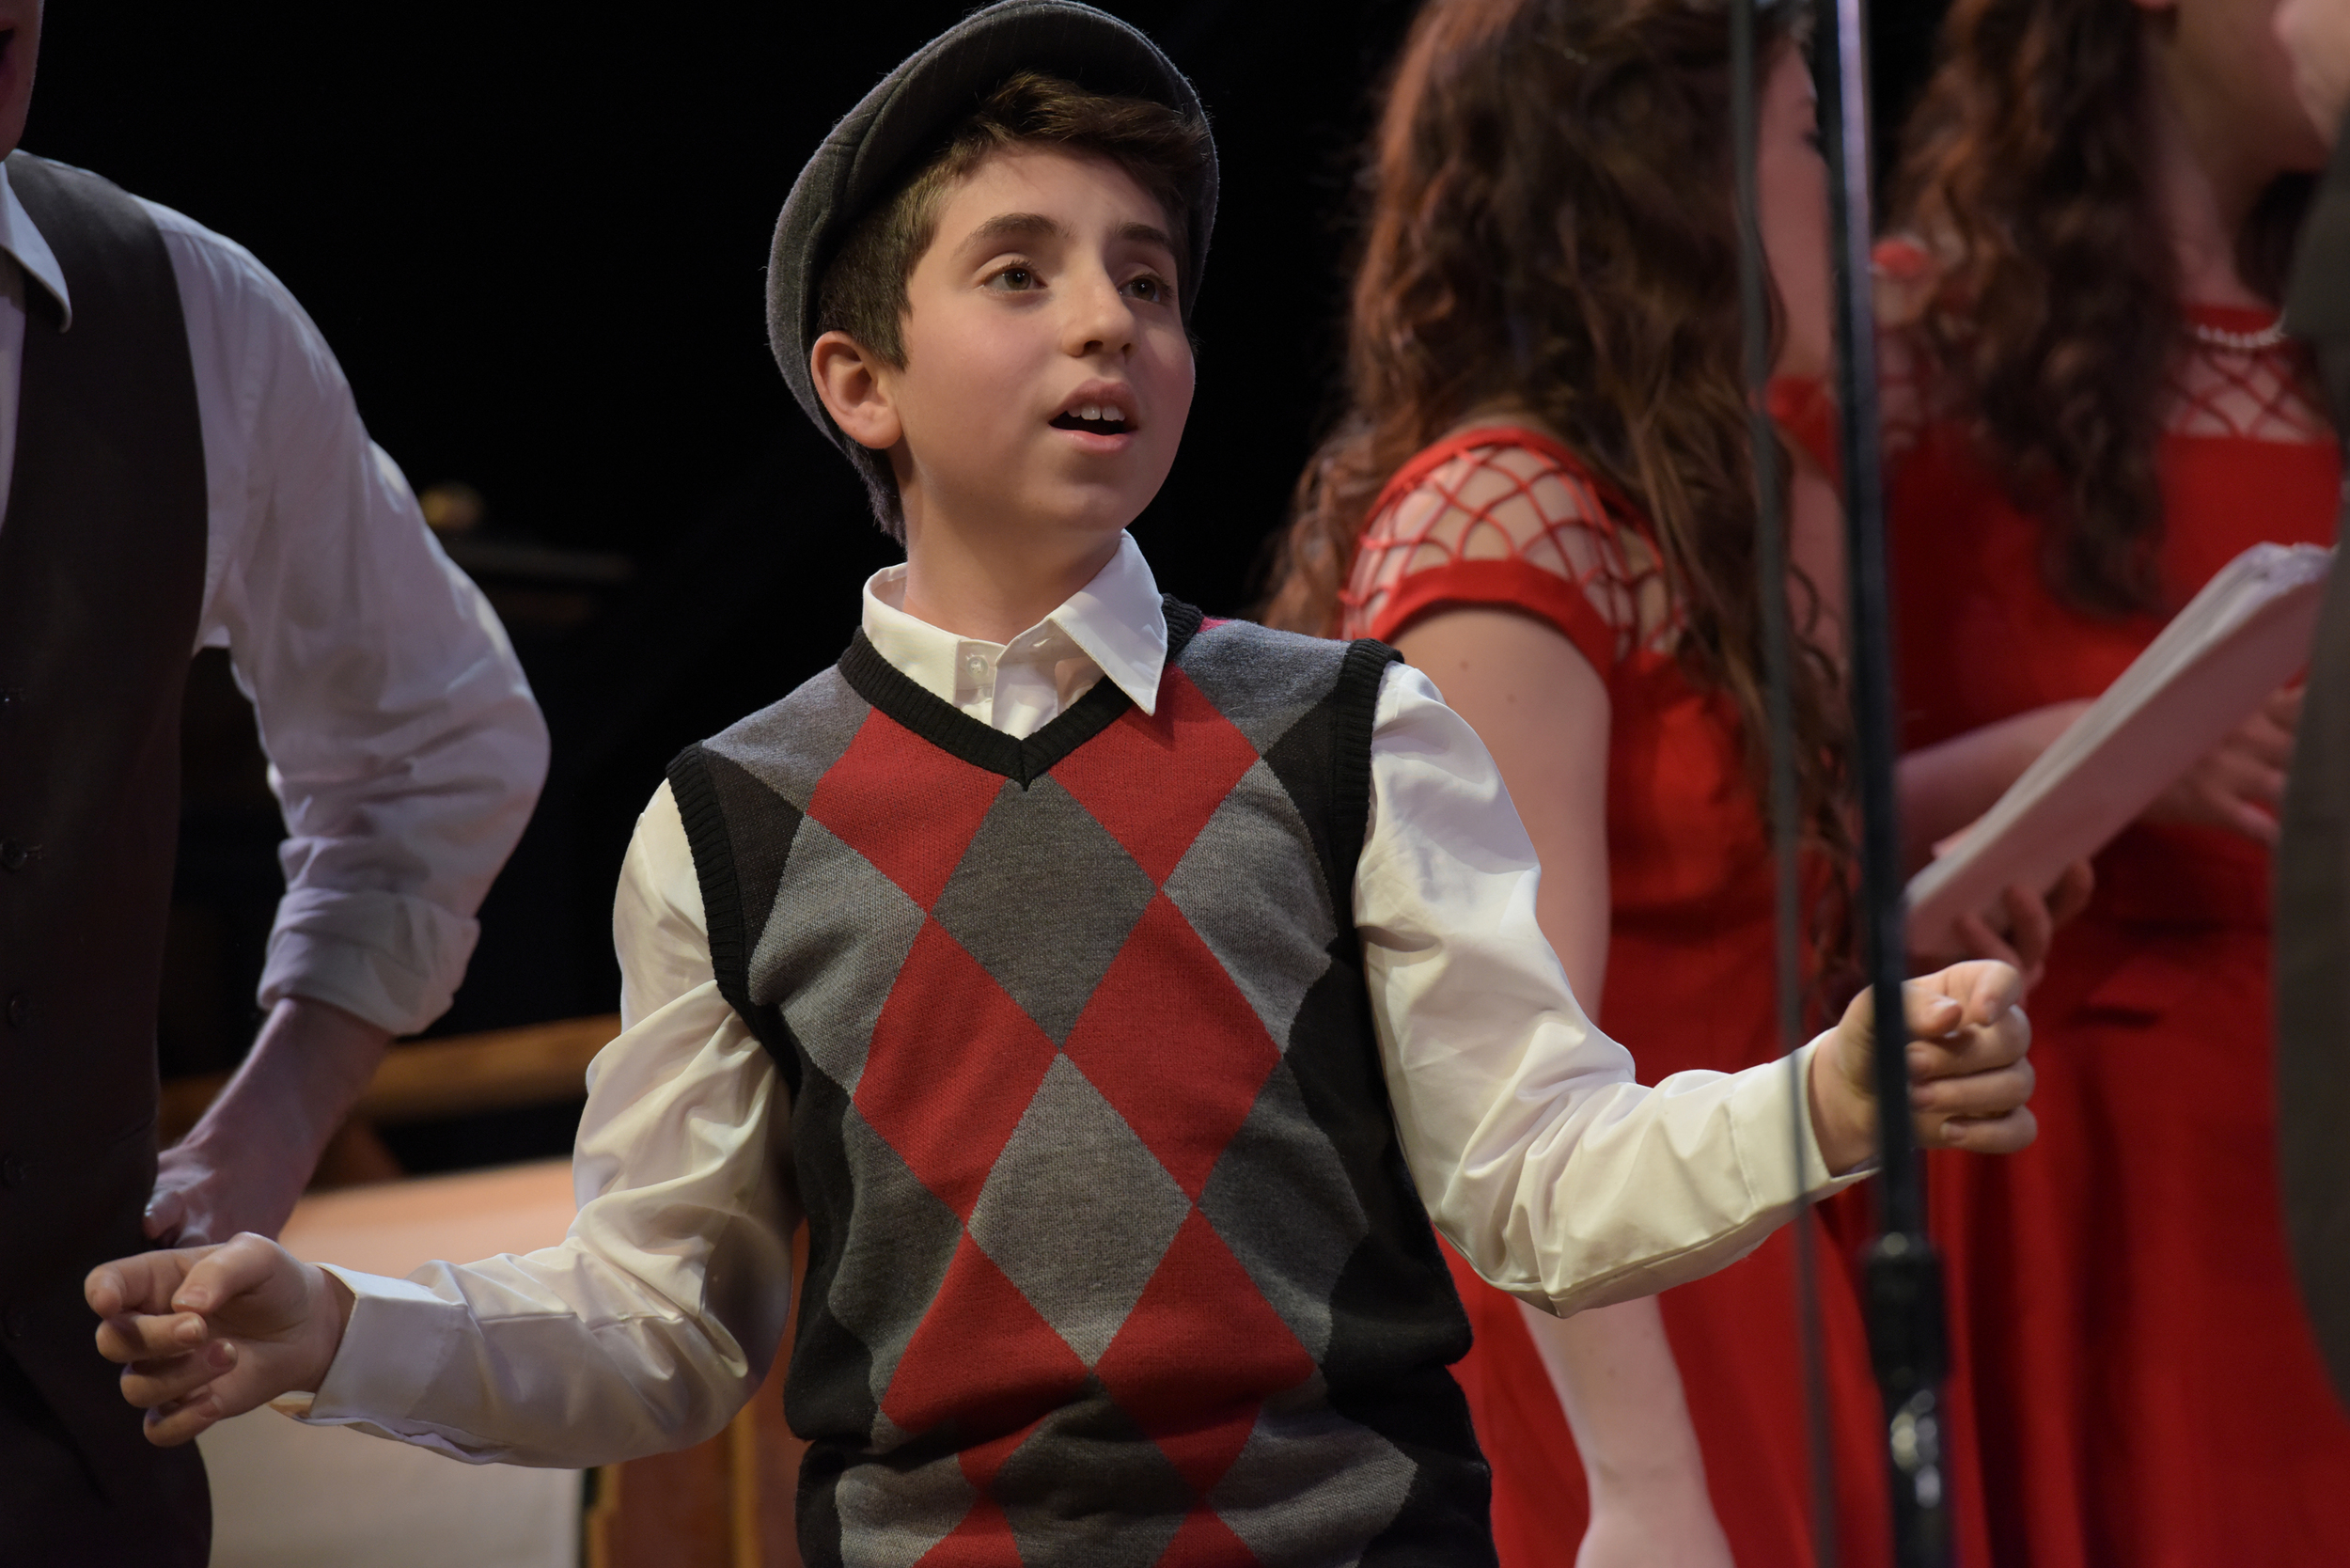 Charlie Kravits as Tiny Tim